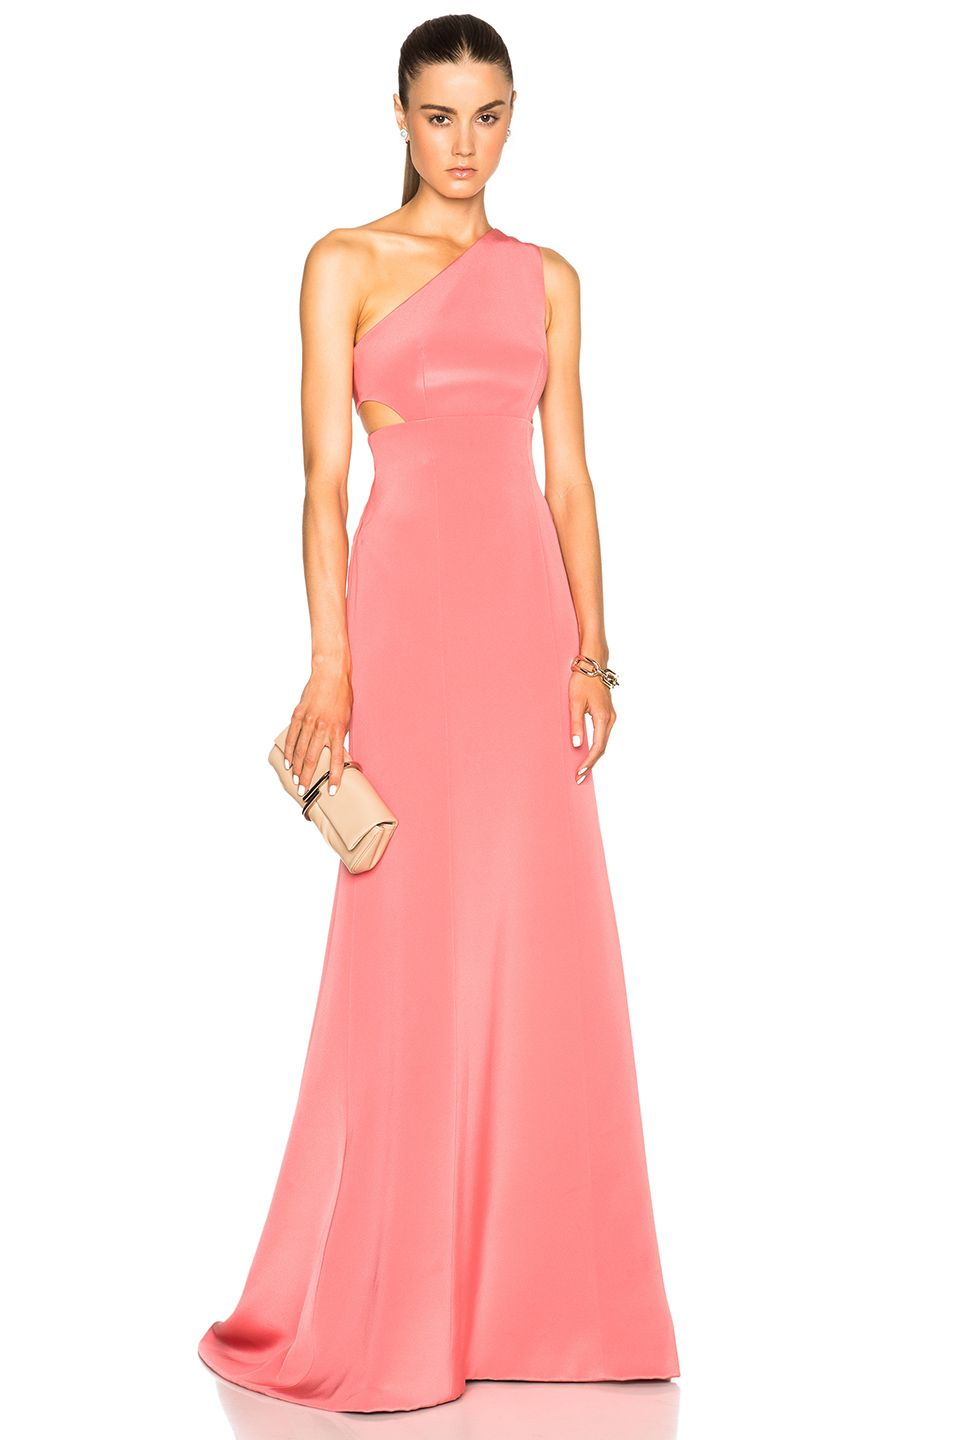 Crepe gown pink kaufmanfranco pinterest crepes gowns and